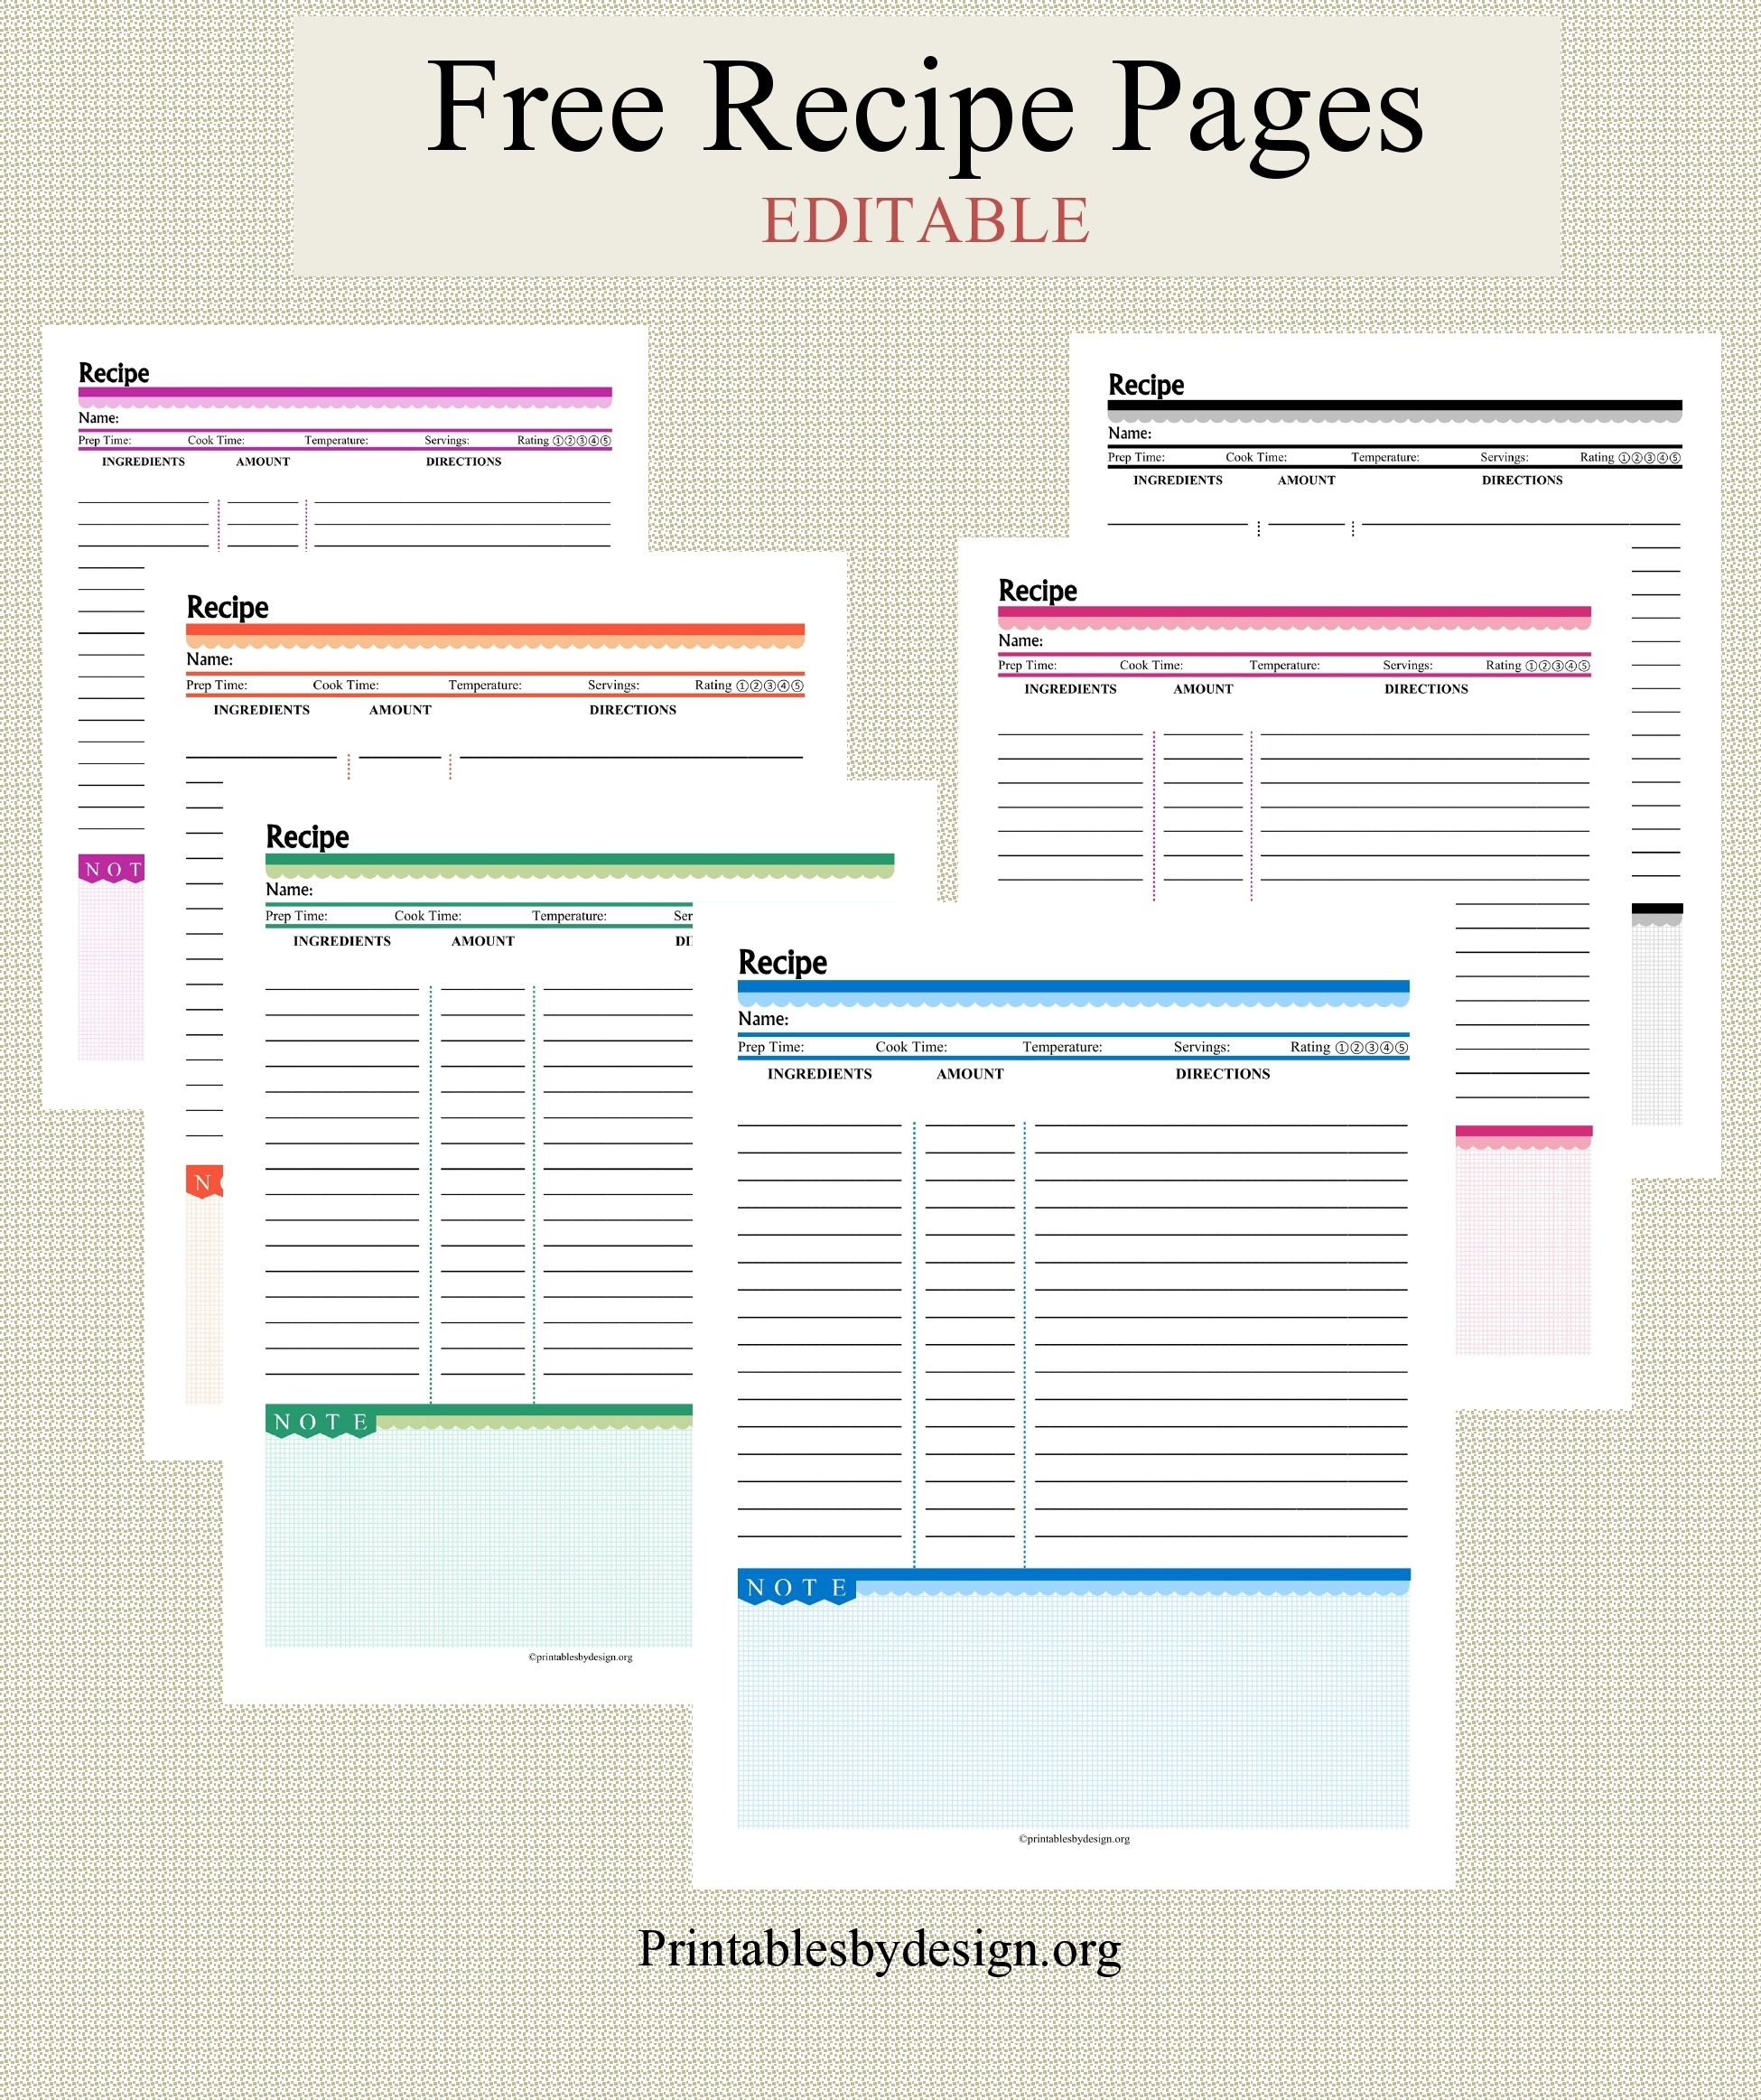 Free Recipe Pages In 6 Colors To Choose From. Editable. | Handmade - Free Printable Recipe Pages